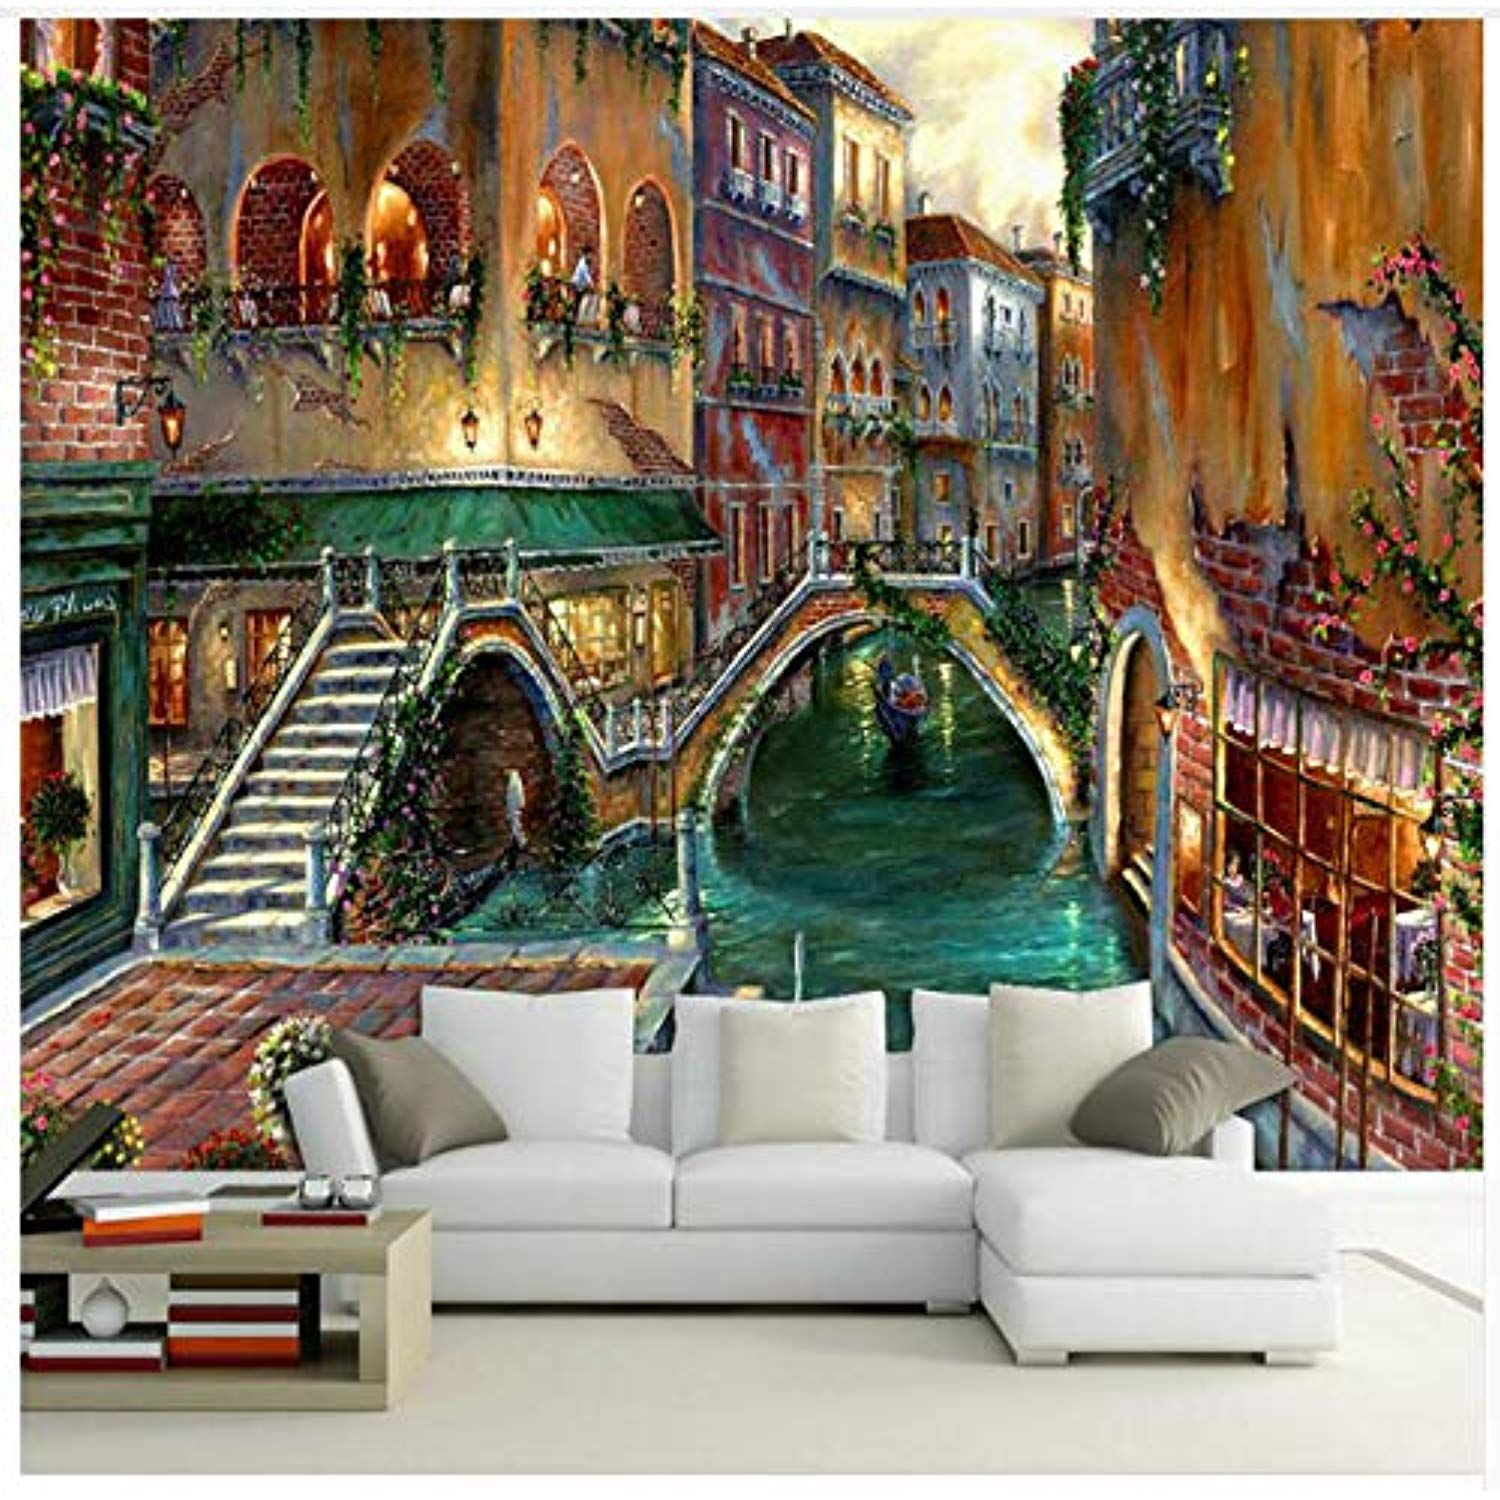 3d Wall Paper Decorative Oil Painting 3d Wallpaper For Living